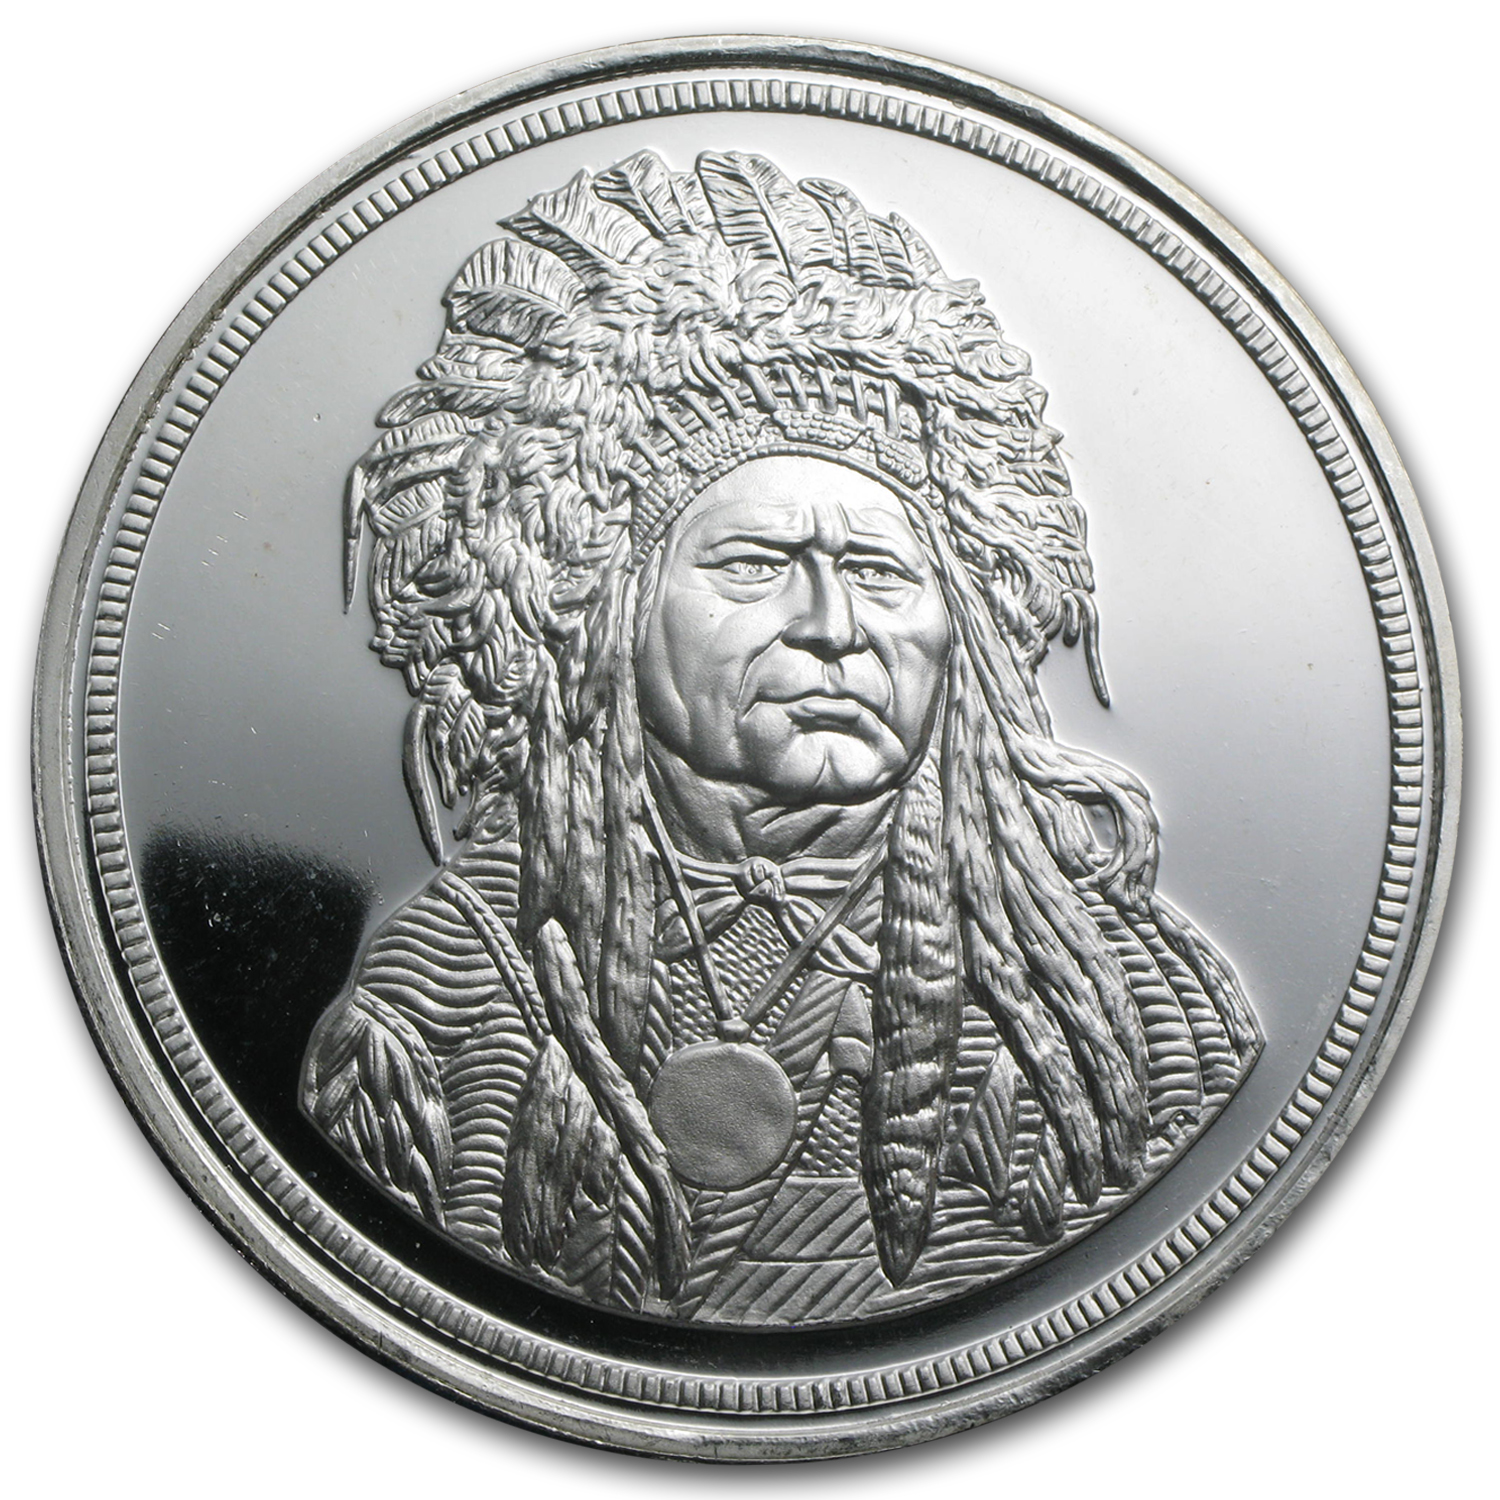 5 oz Silver Round - Running Antelope (The Silver Chief)